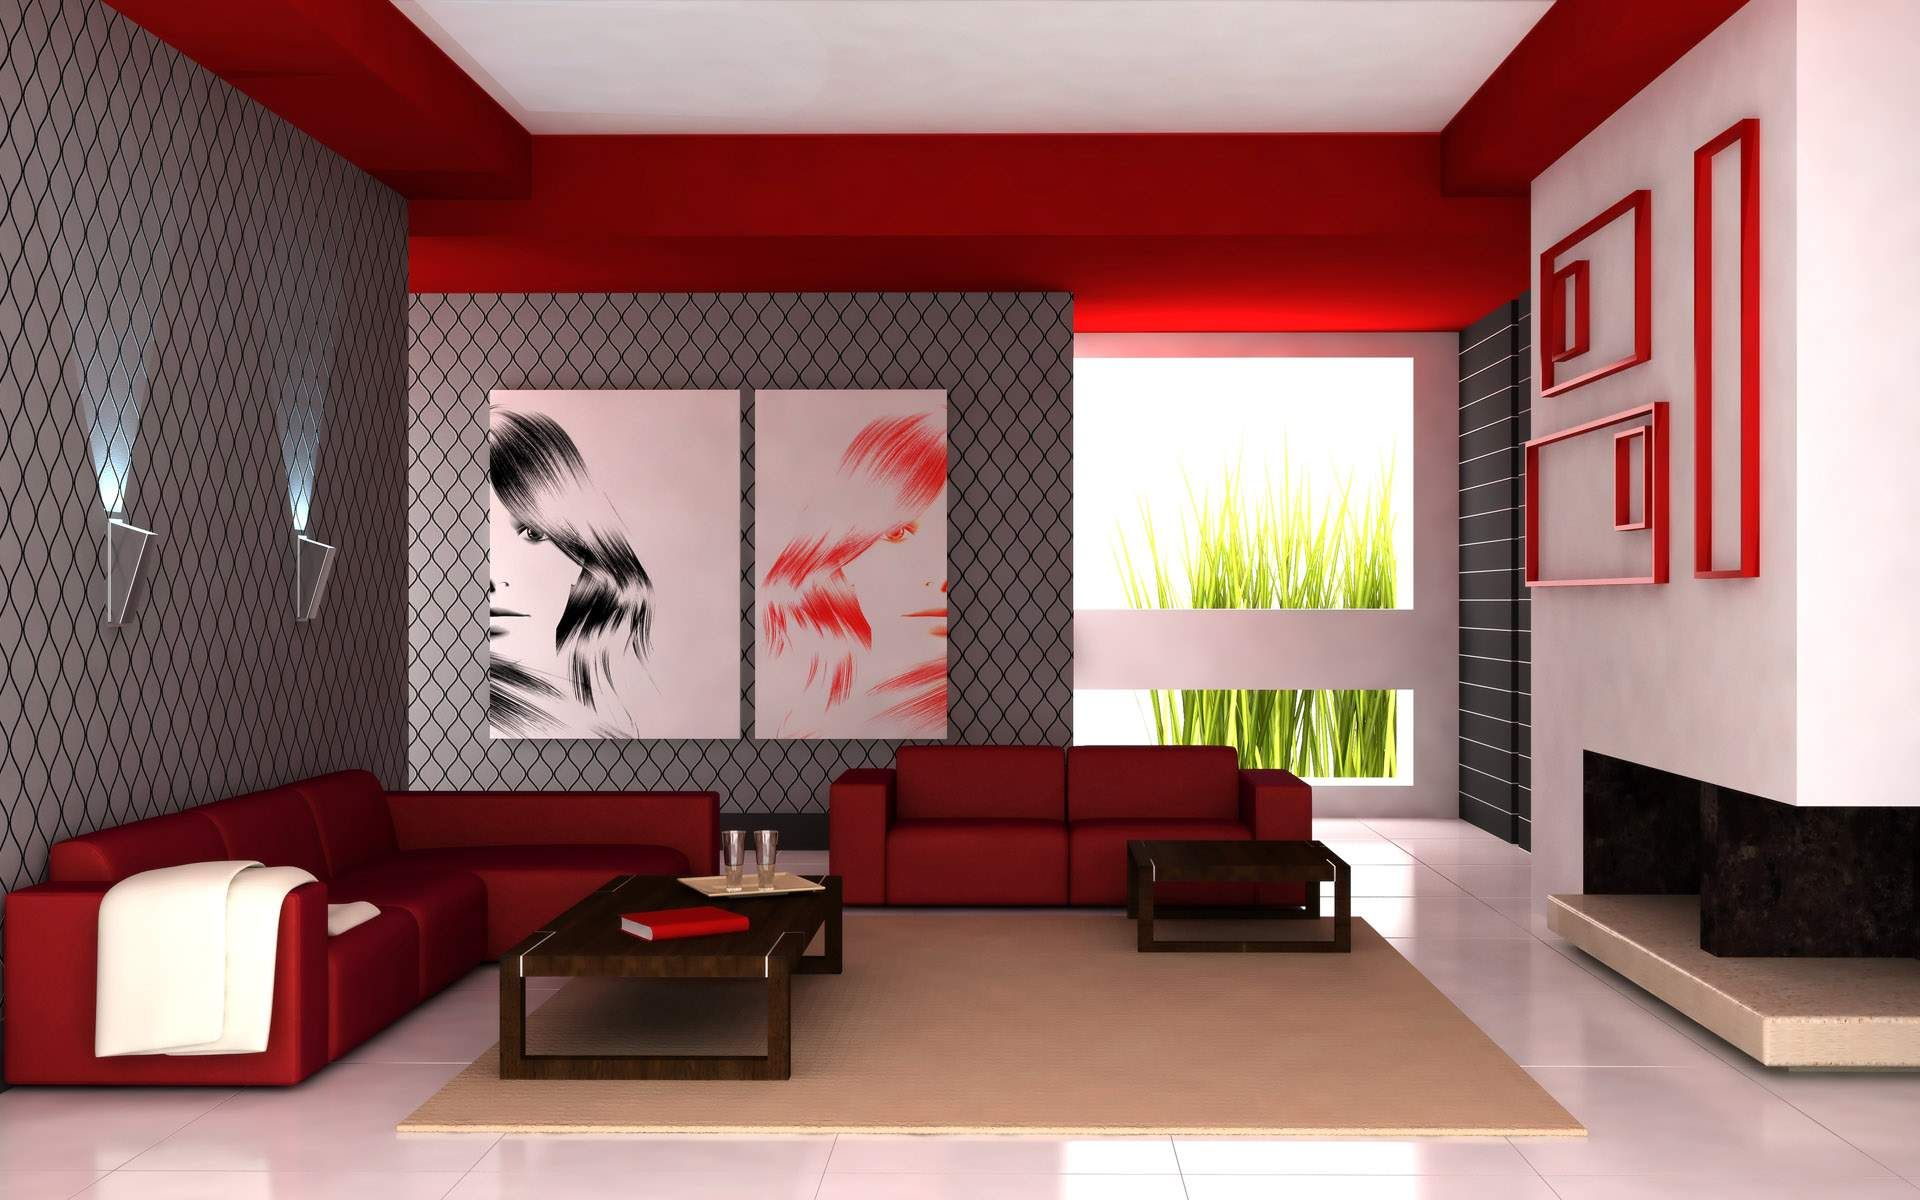 Interior Design Living Room Color cool living room interior with flashy red color - stylendesigns